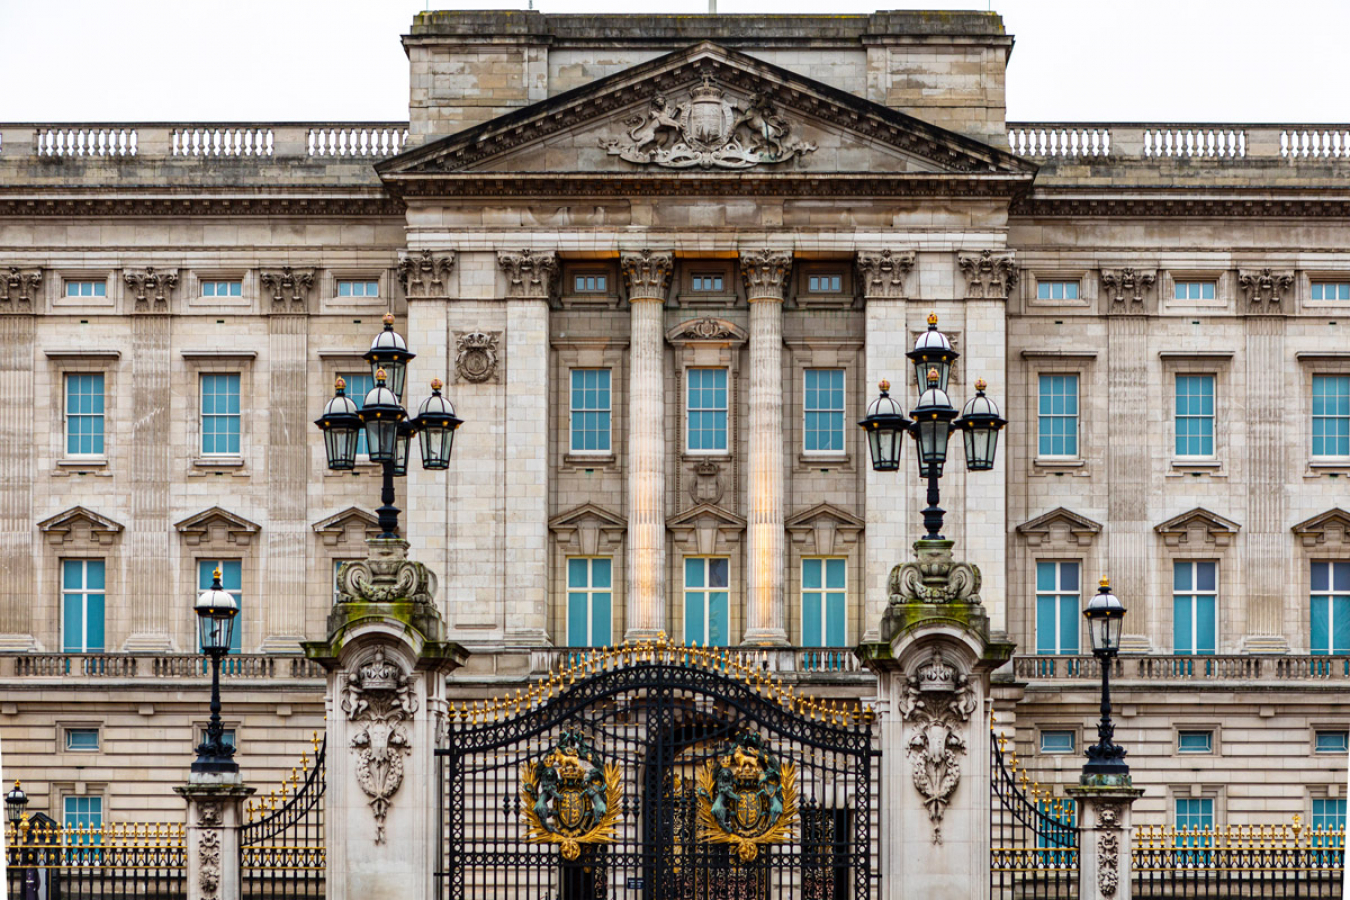 Buckingham Palace, home of the Royal Family